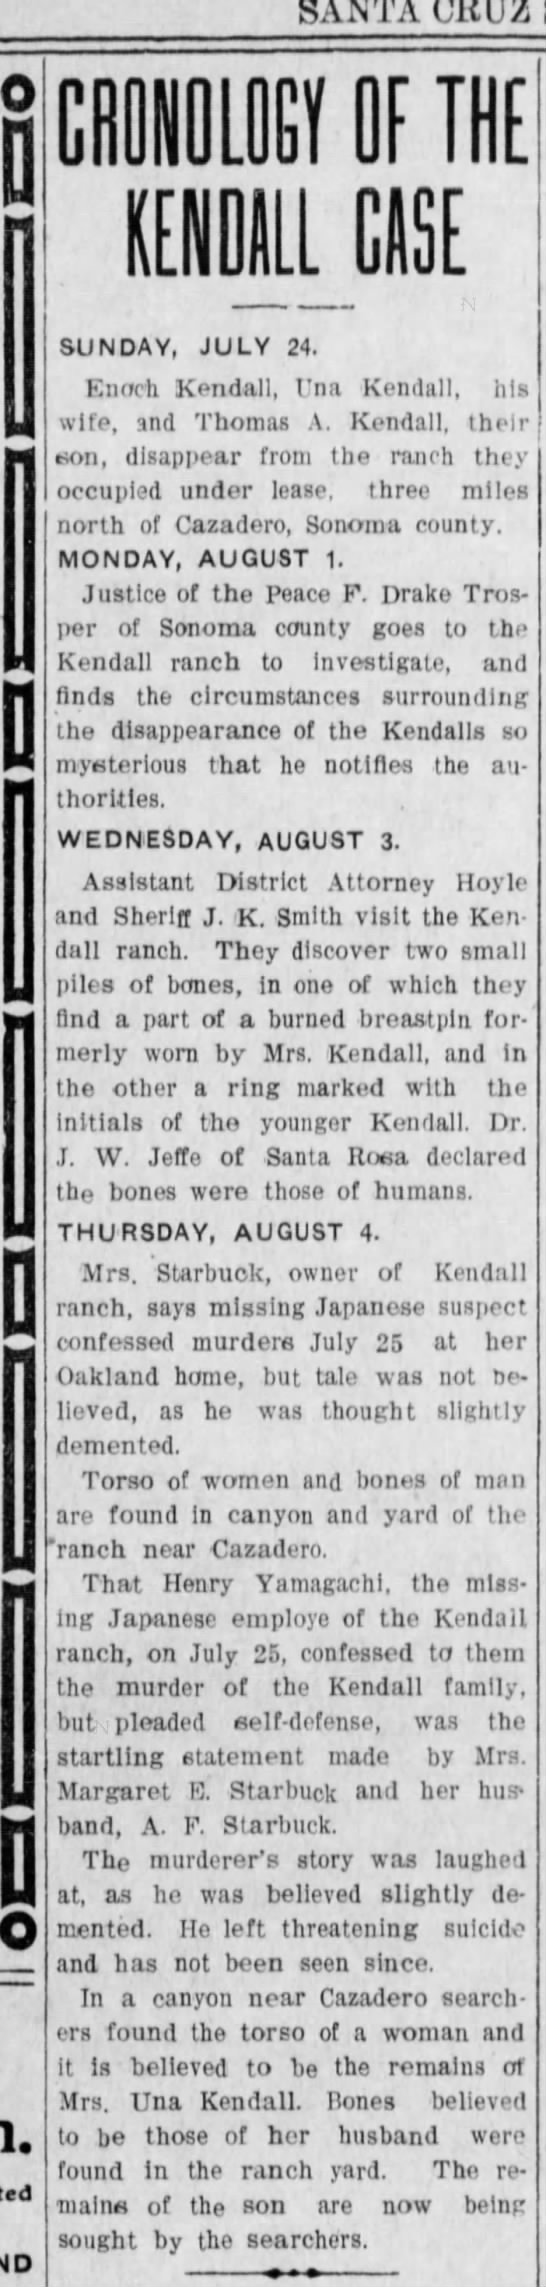 Kendall chronology - 6 Aug 1910 -